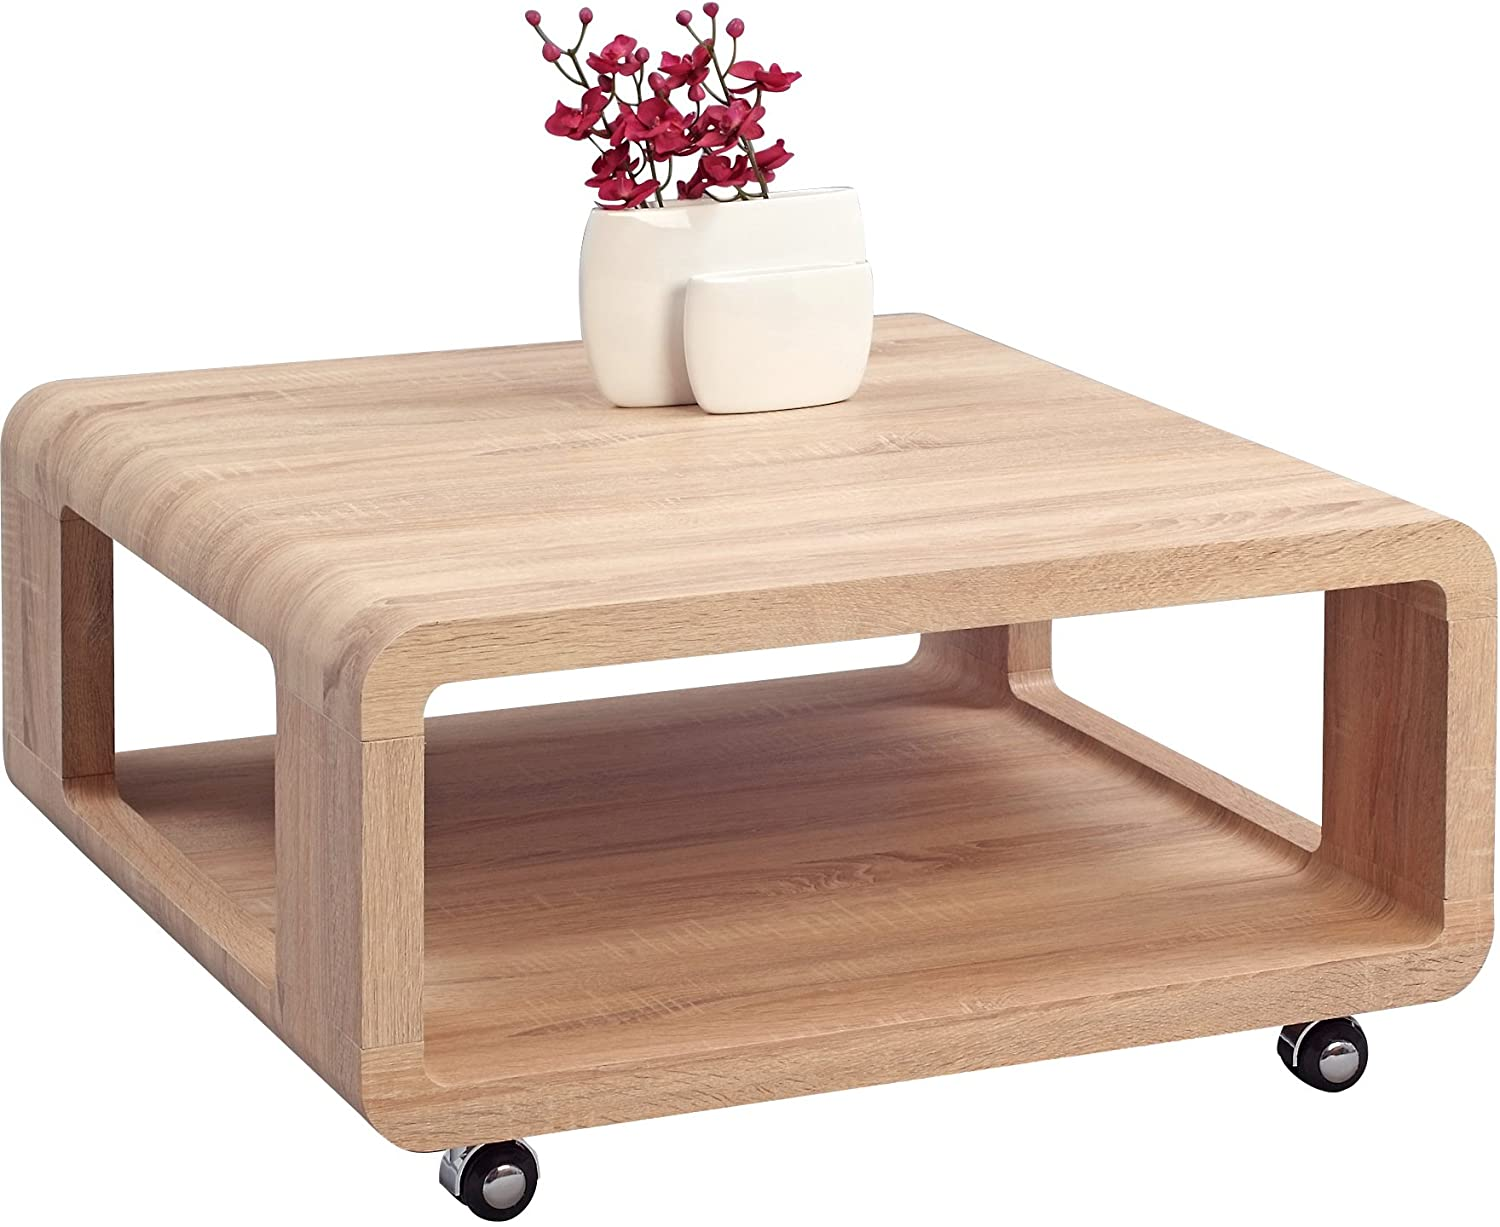 hometrends4you 217942 coffee table 80 x 40 x 80 cm sonoma oak